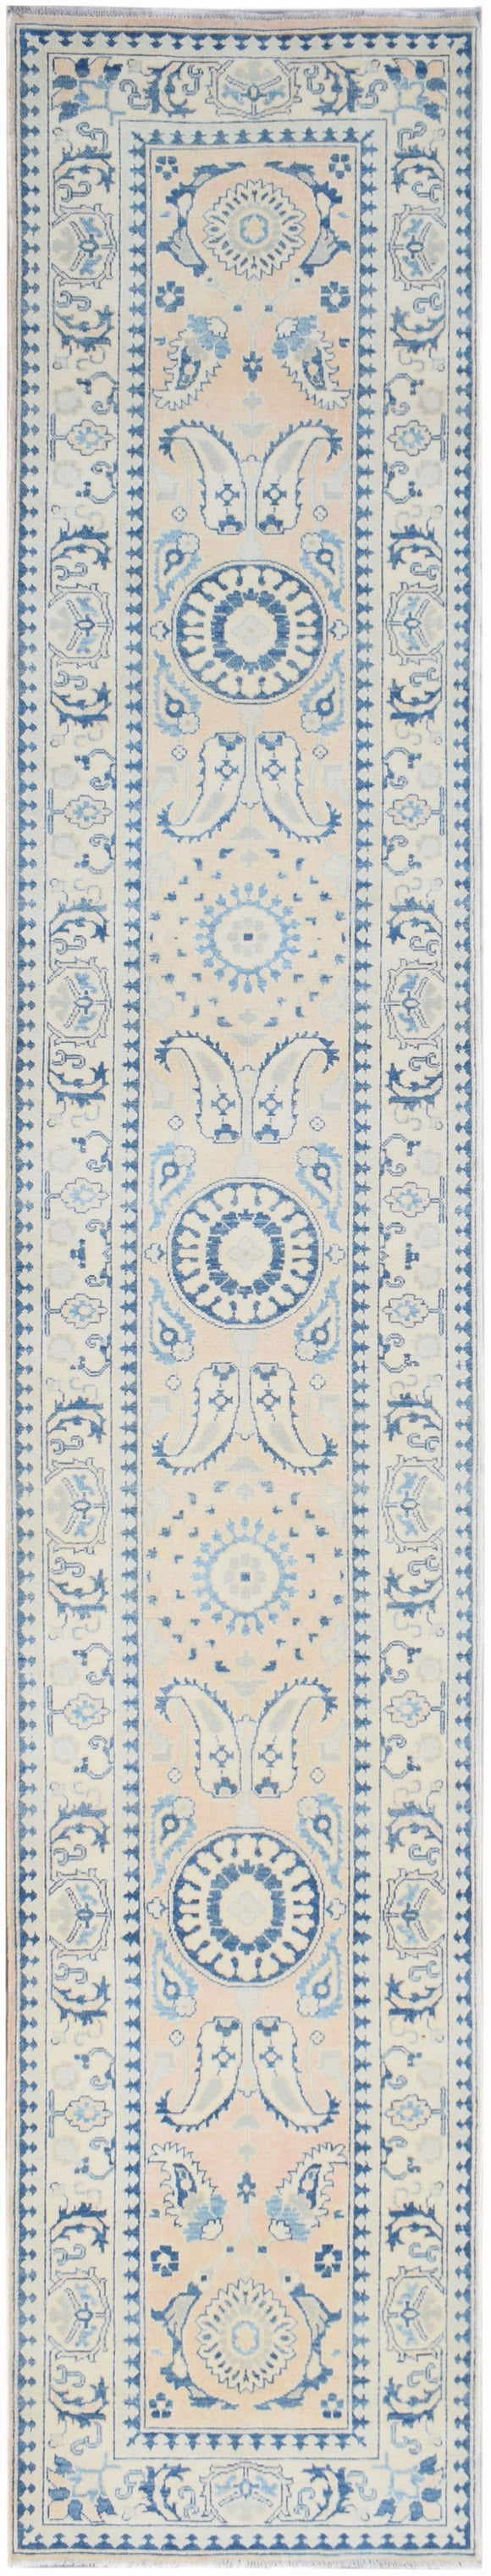 Handmade Sultan Collection Hallway Runner | 476 x 88 cm | 18'7